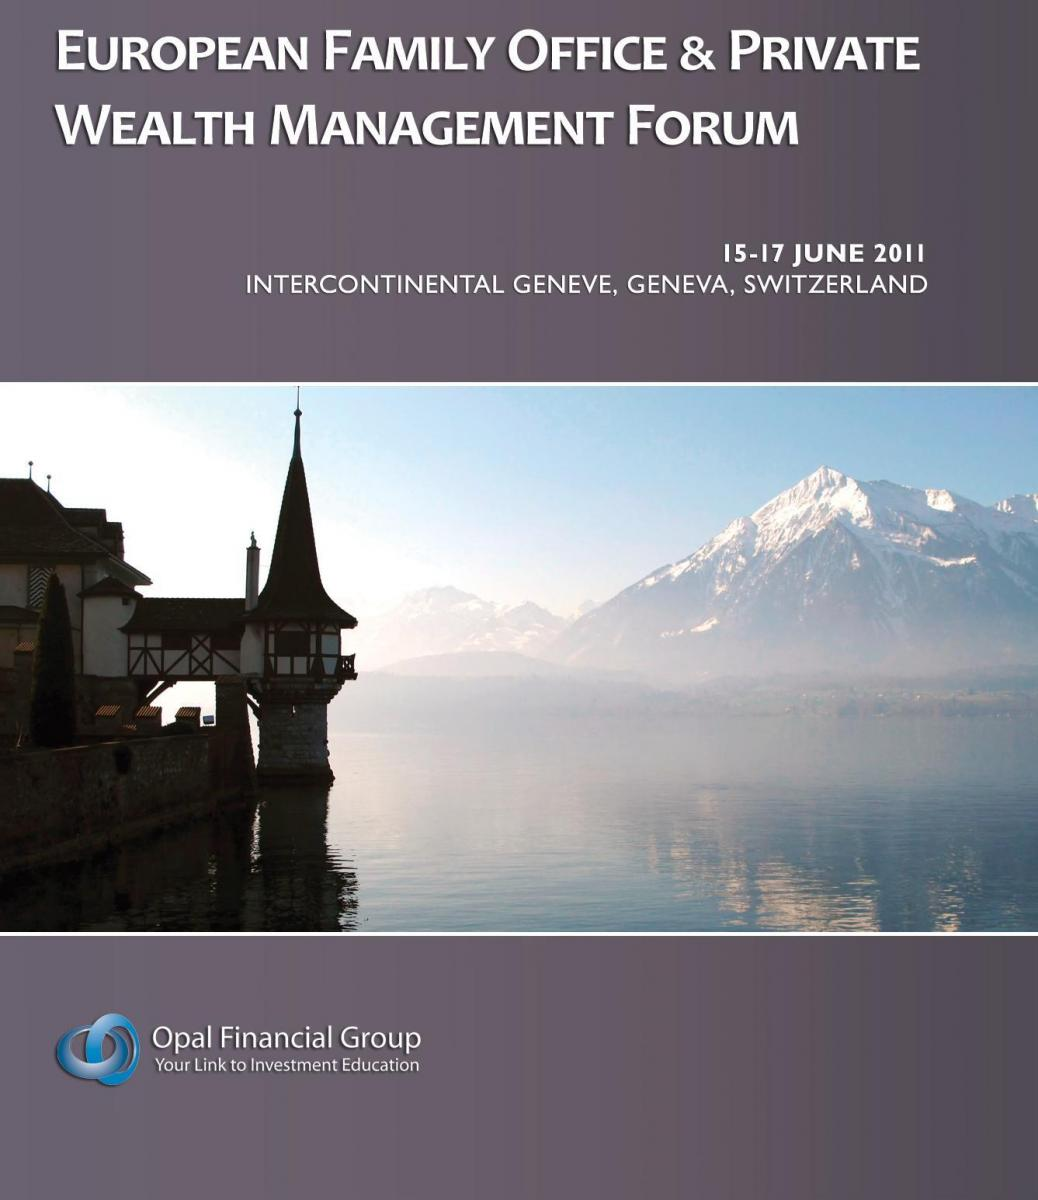 European Family Office and Private Wealth Management Forum